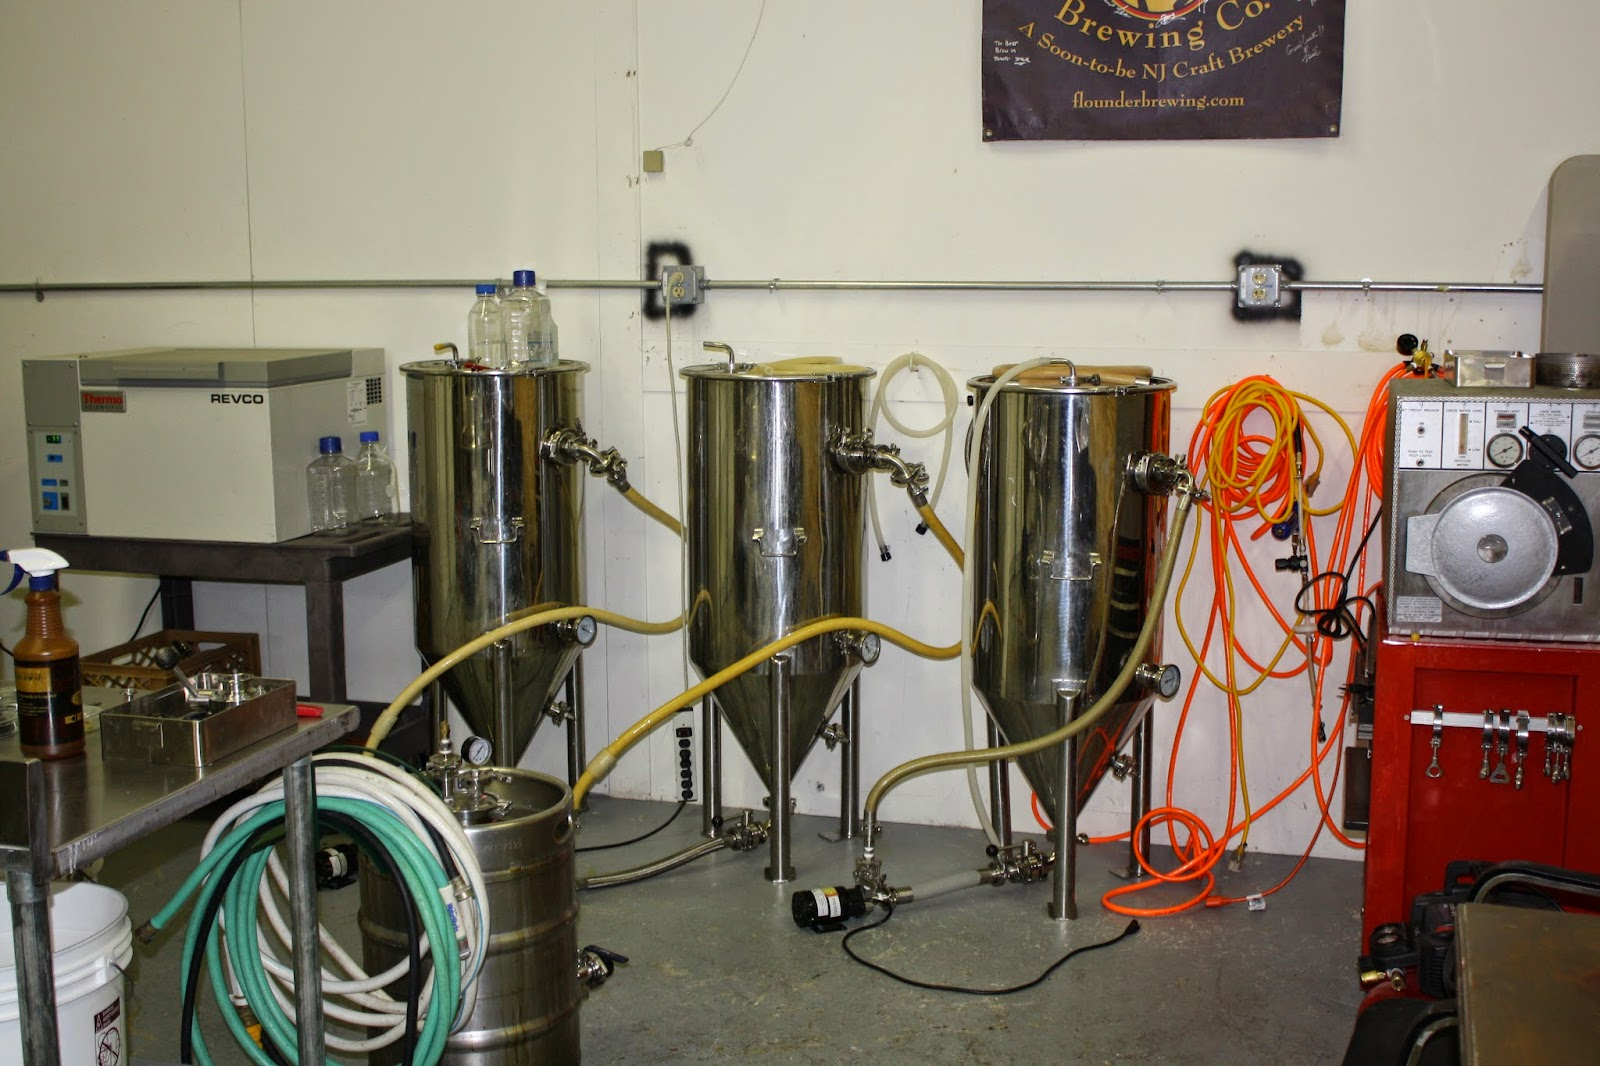 Flounder Brewing, Craft Beer, New Jersey Craft Beer, Brewery Tour